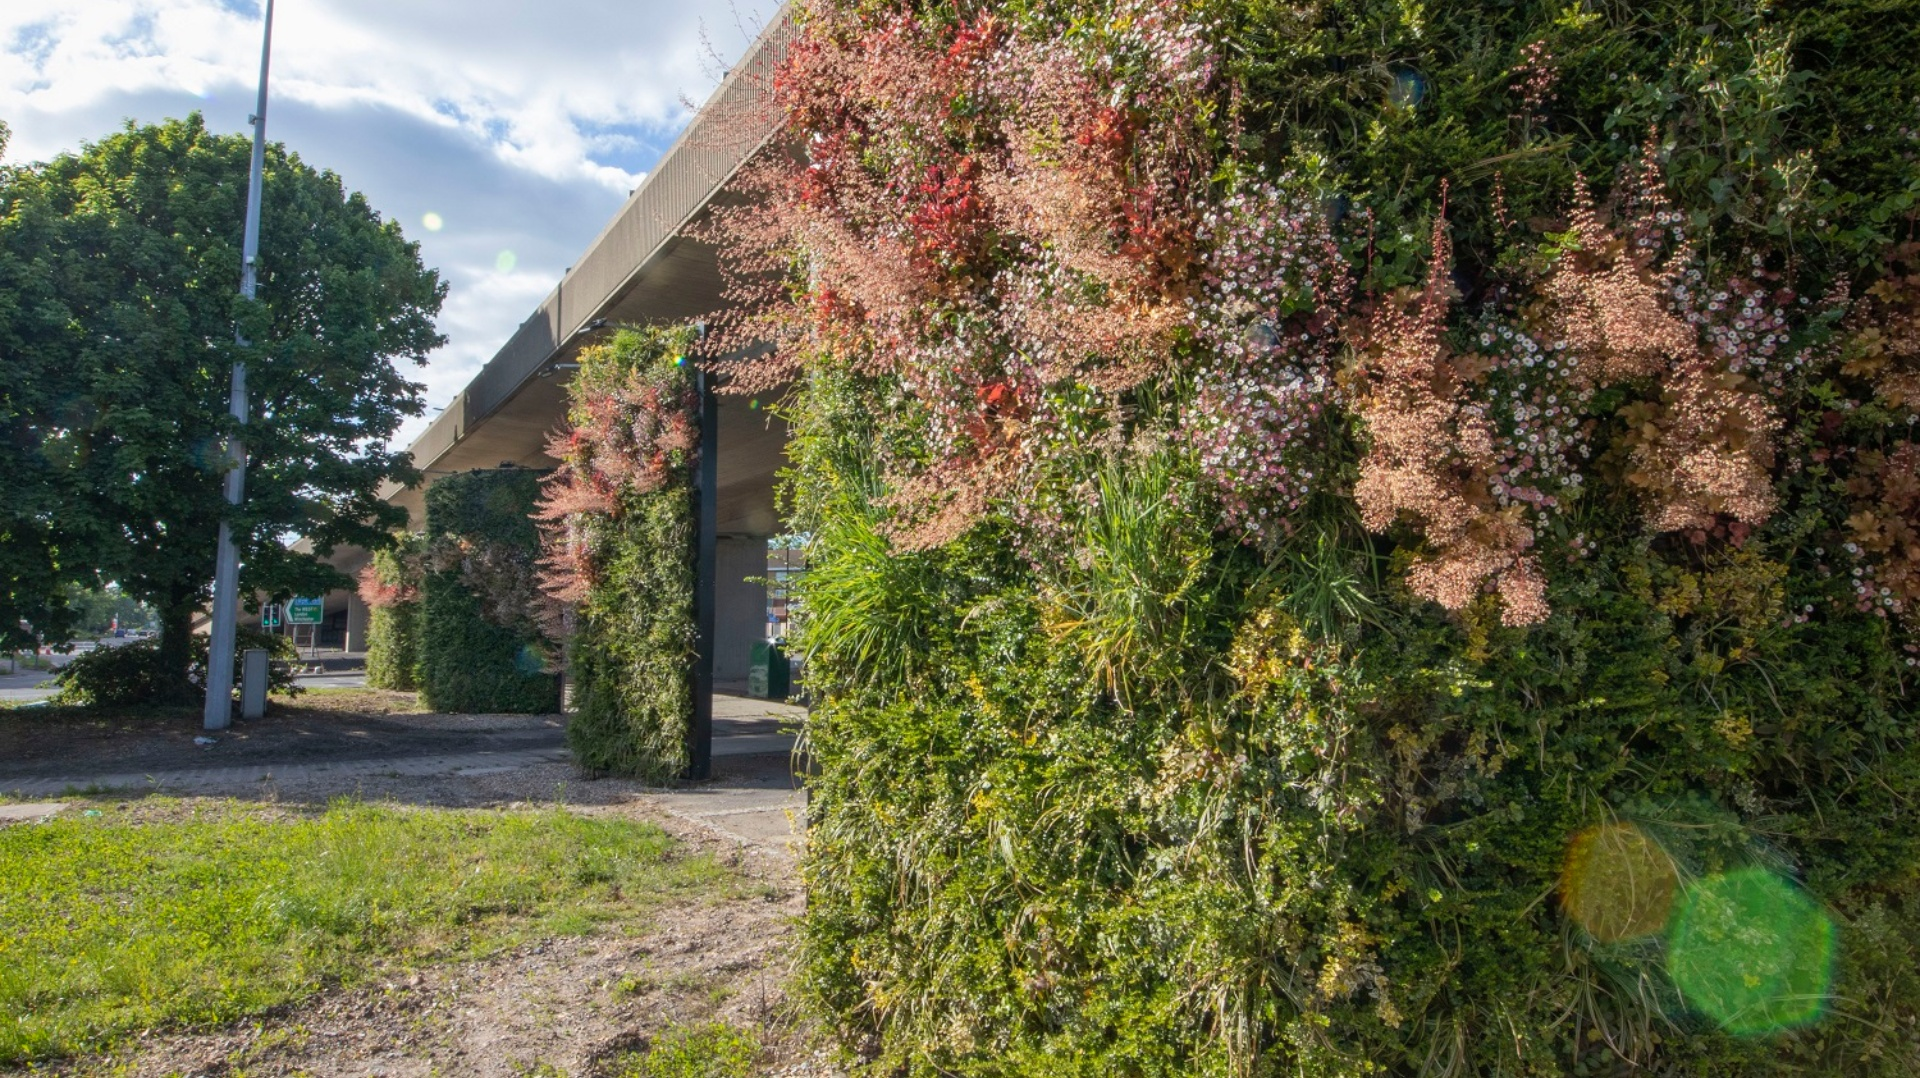 New Living Wall is first of its kind in UK